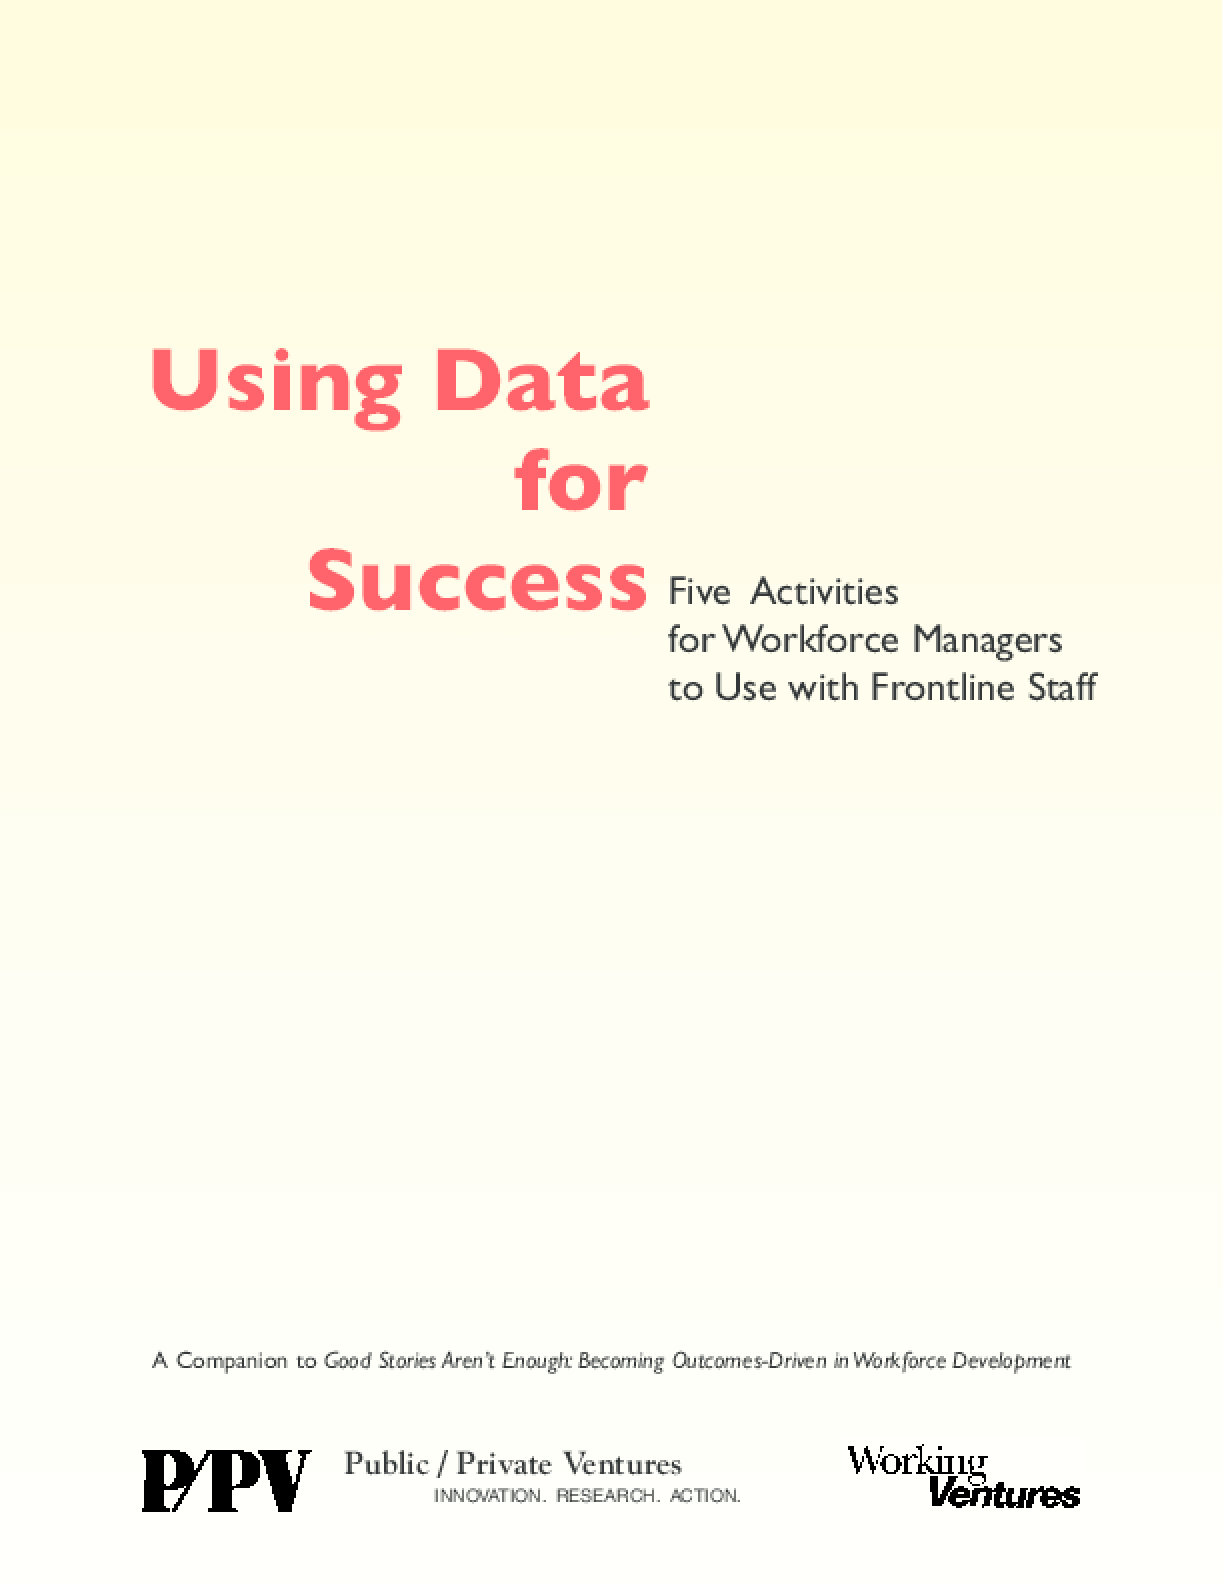 Using Data for Success: Five Activities for Workforce Managers to Use with Frontline Staff